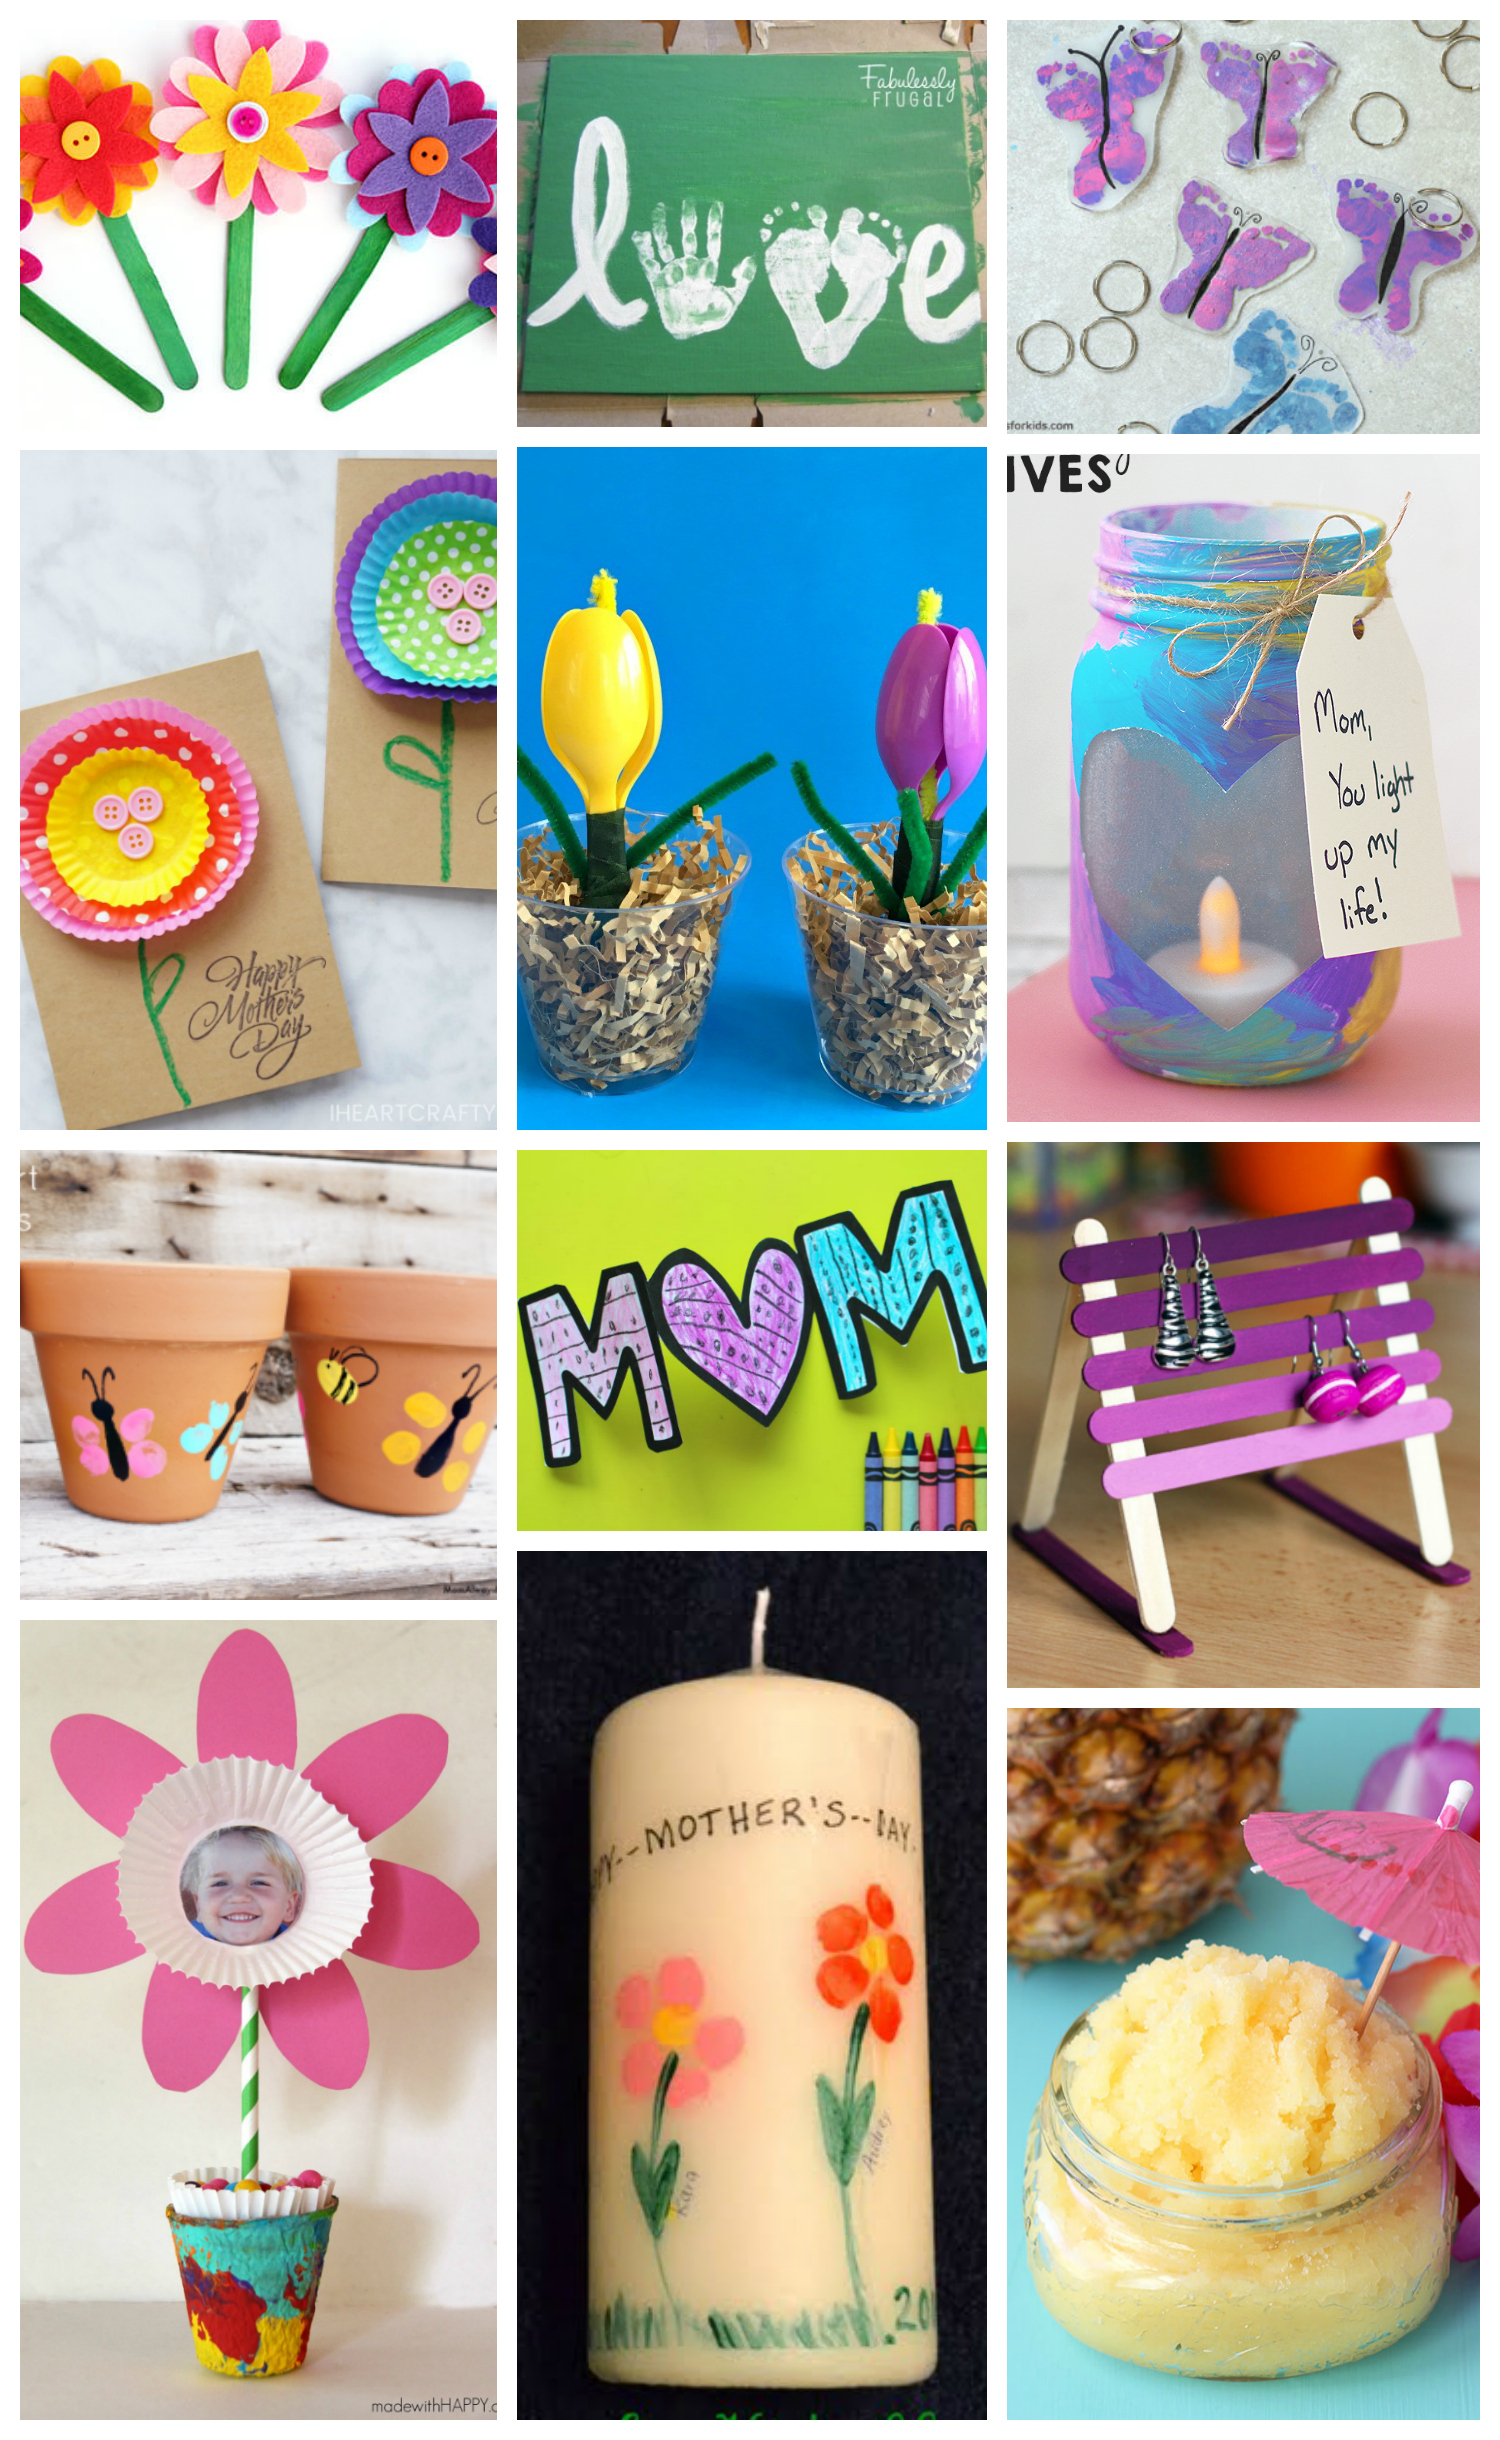 Gifts Ideas For Mothers Day: Easy Mother's Day Crafts For Kids